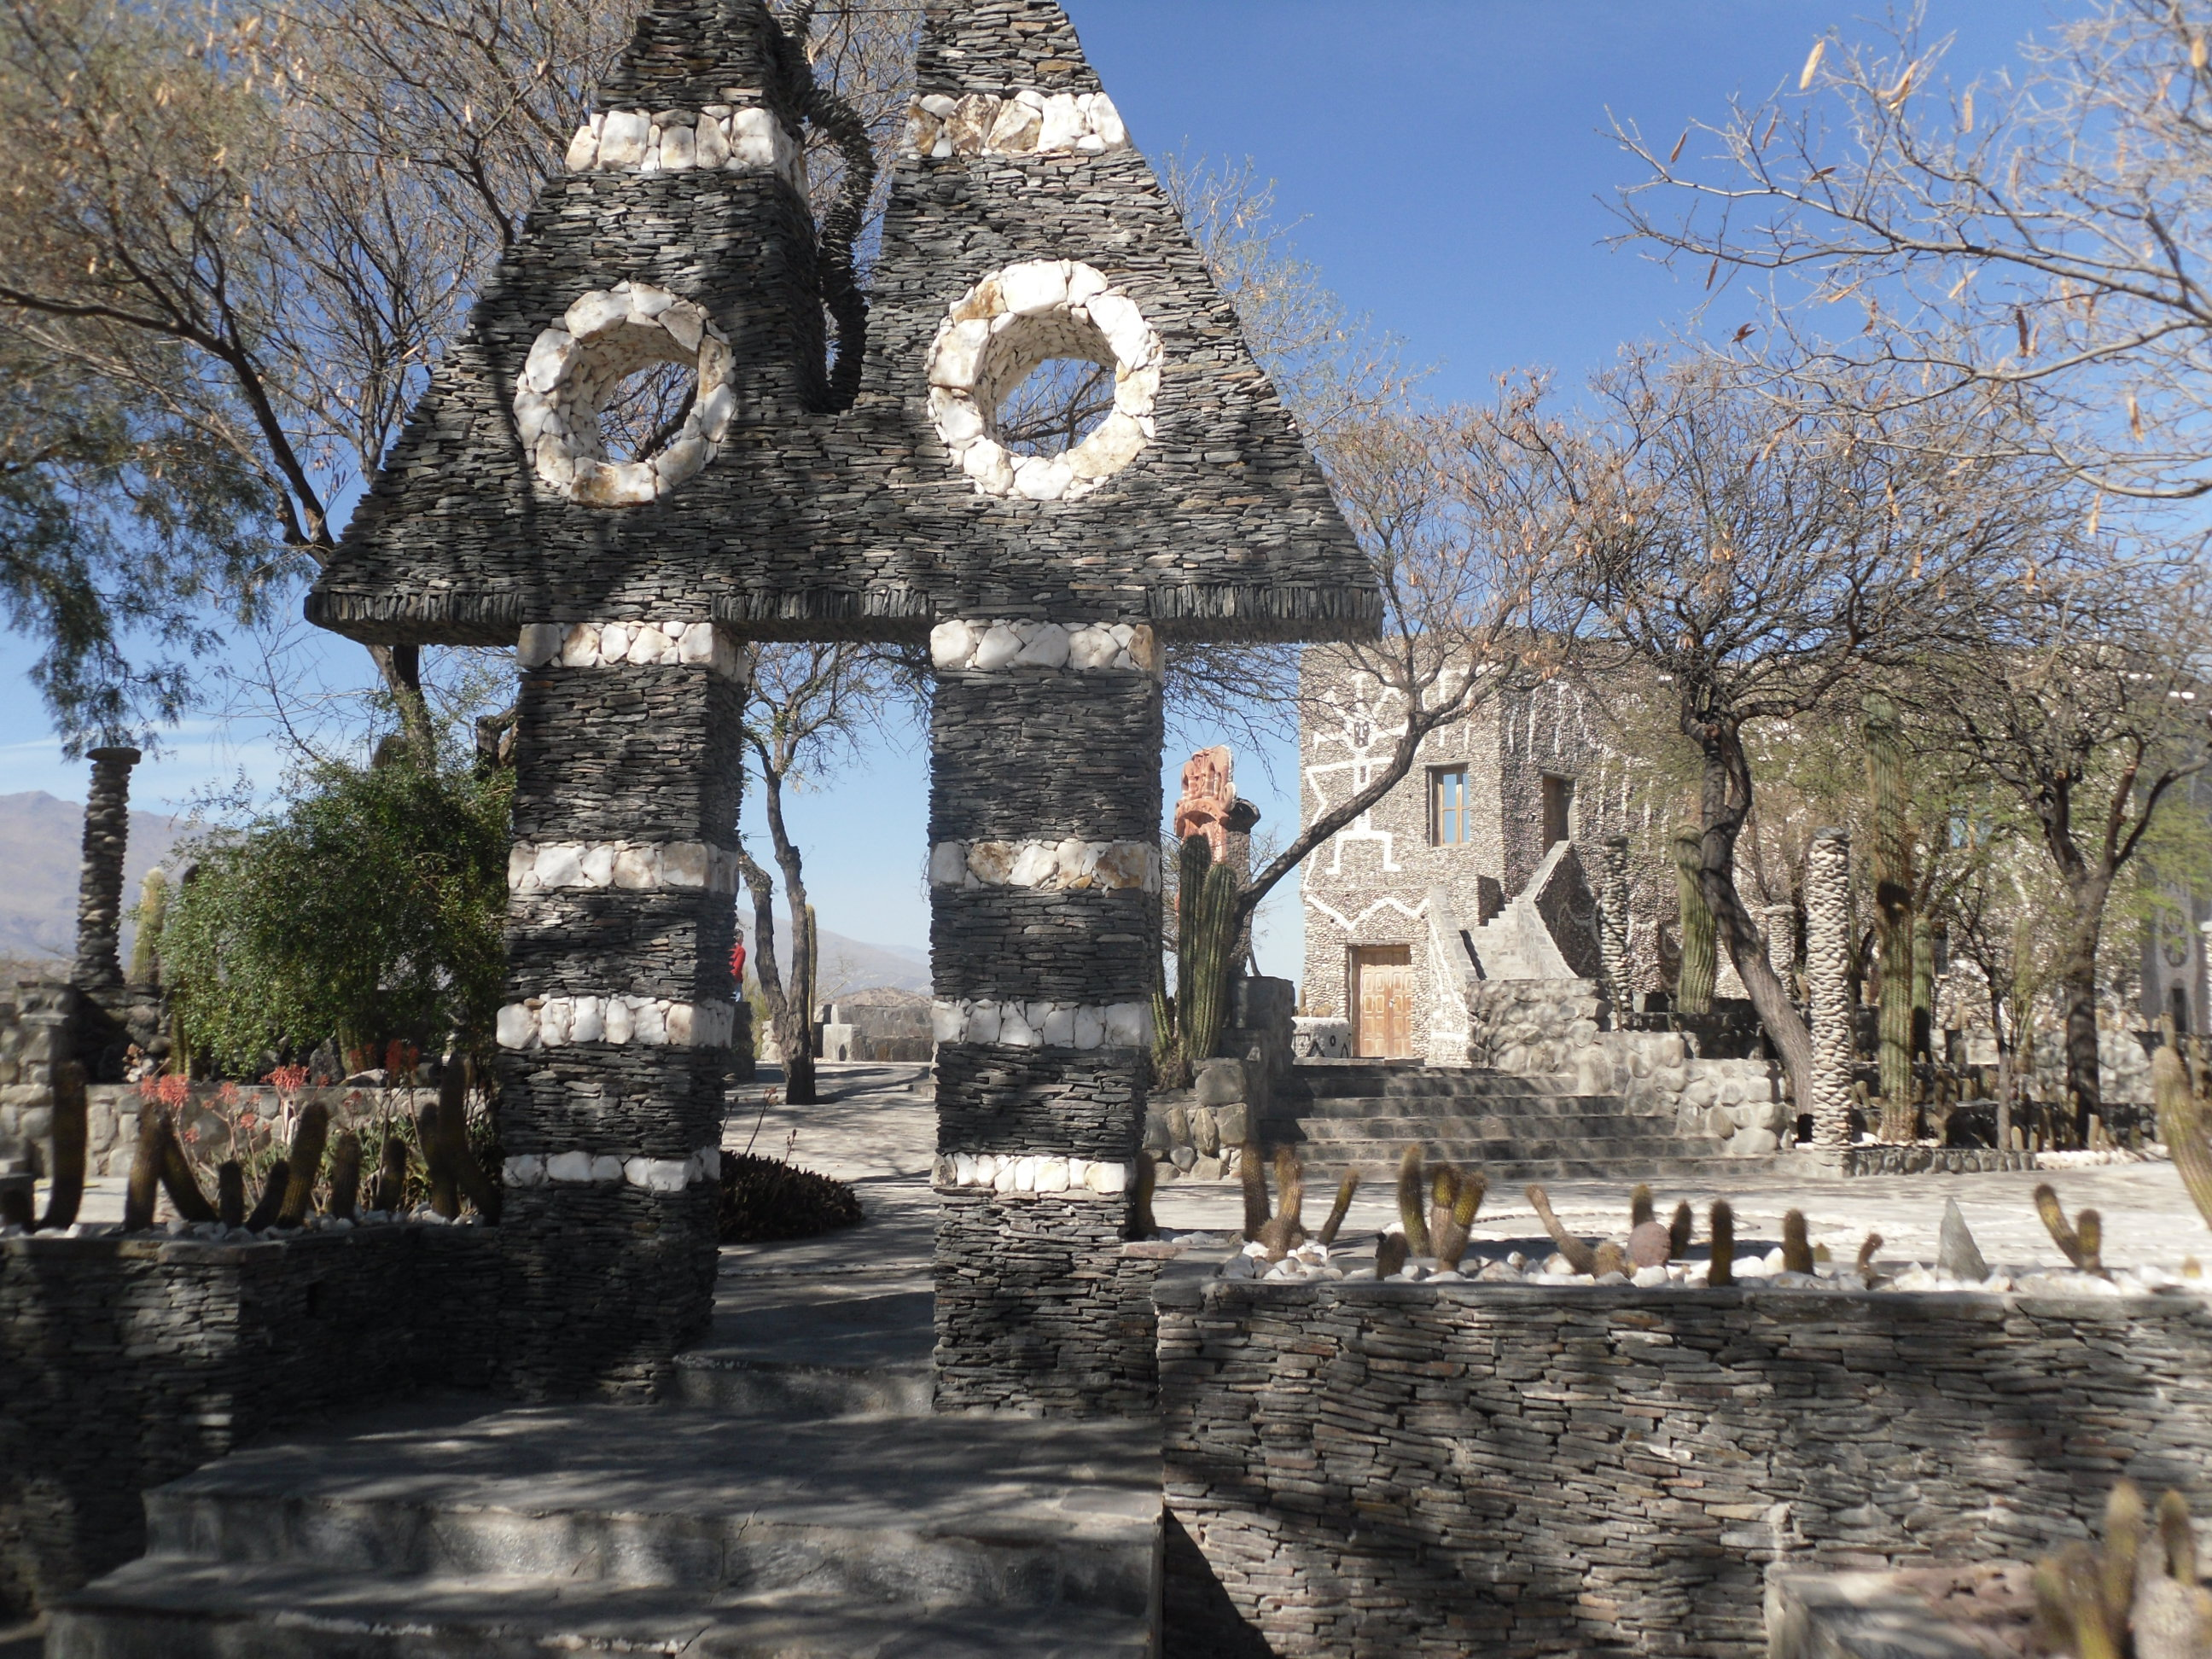 Pachamama Museum near Quilmes archaeological site, Argentina